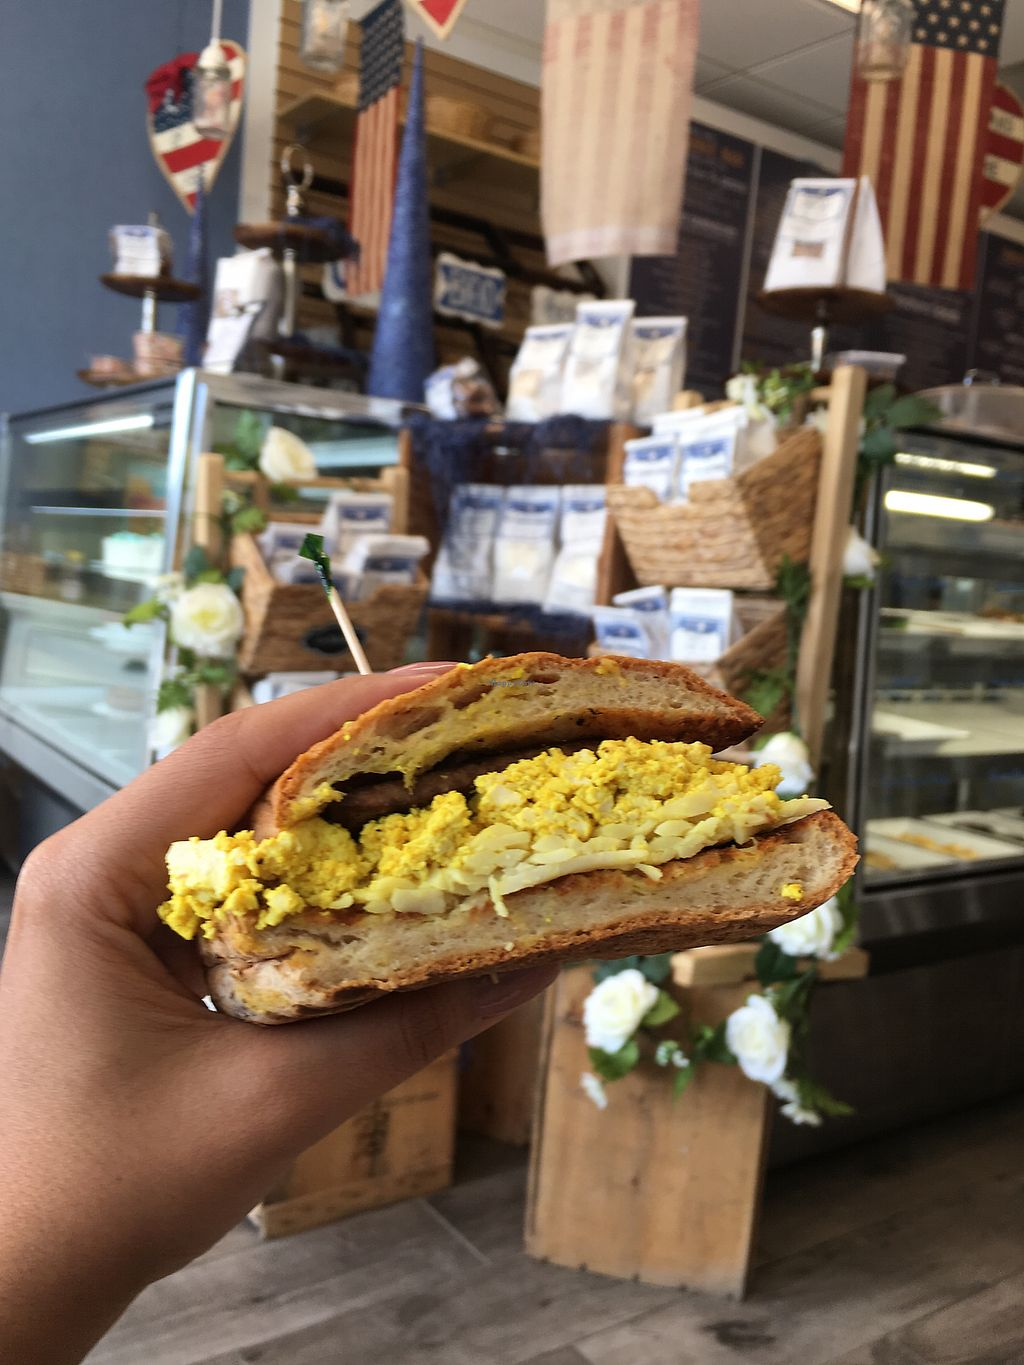 "Photo of Bare Buns Bakery  by <a href=""/members/profile/krpm123"">krpm123</a> <br/>Best vegan breakfast sandwich!  <br/> September 10, 2017  - <a href='/contact/abuse/image/97063/302971'>Report</a>"